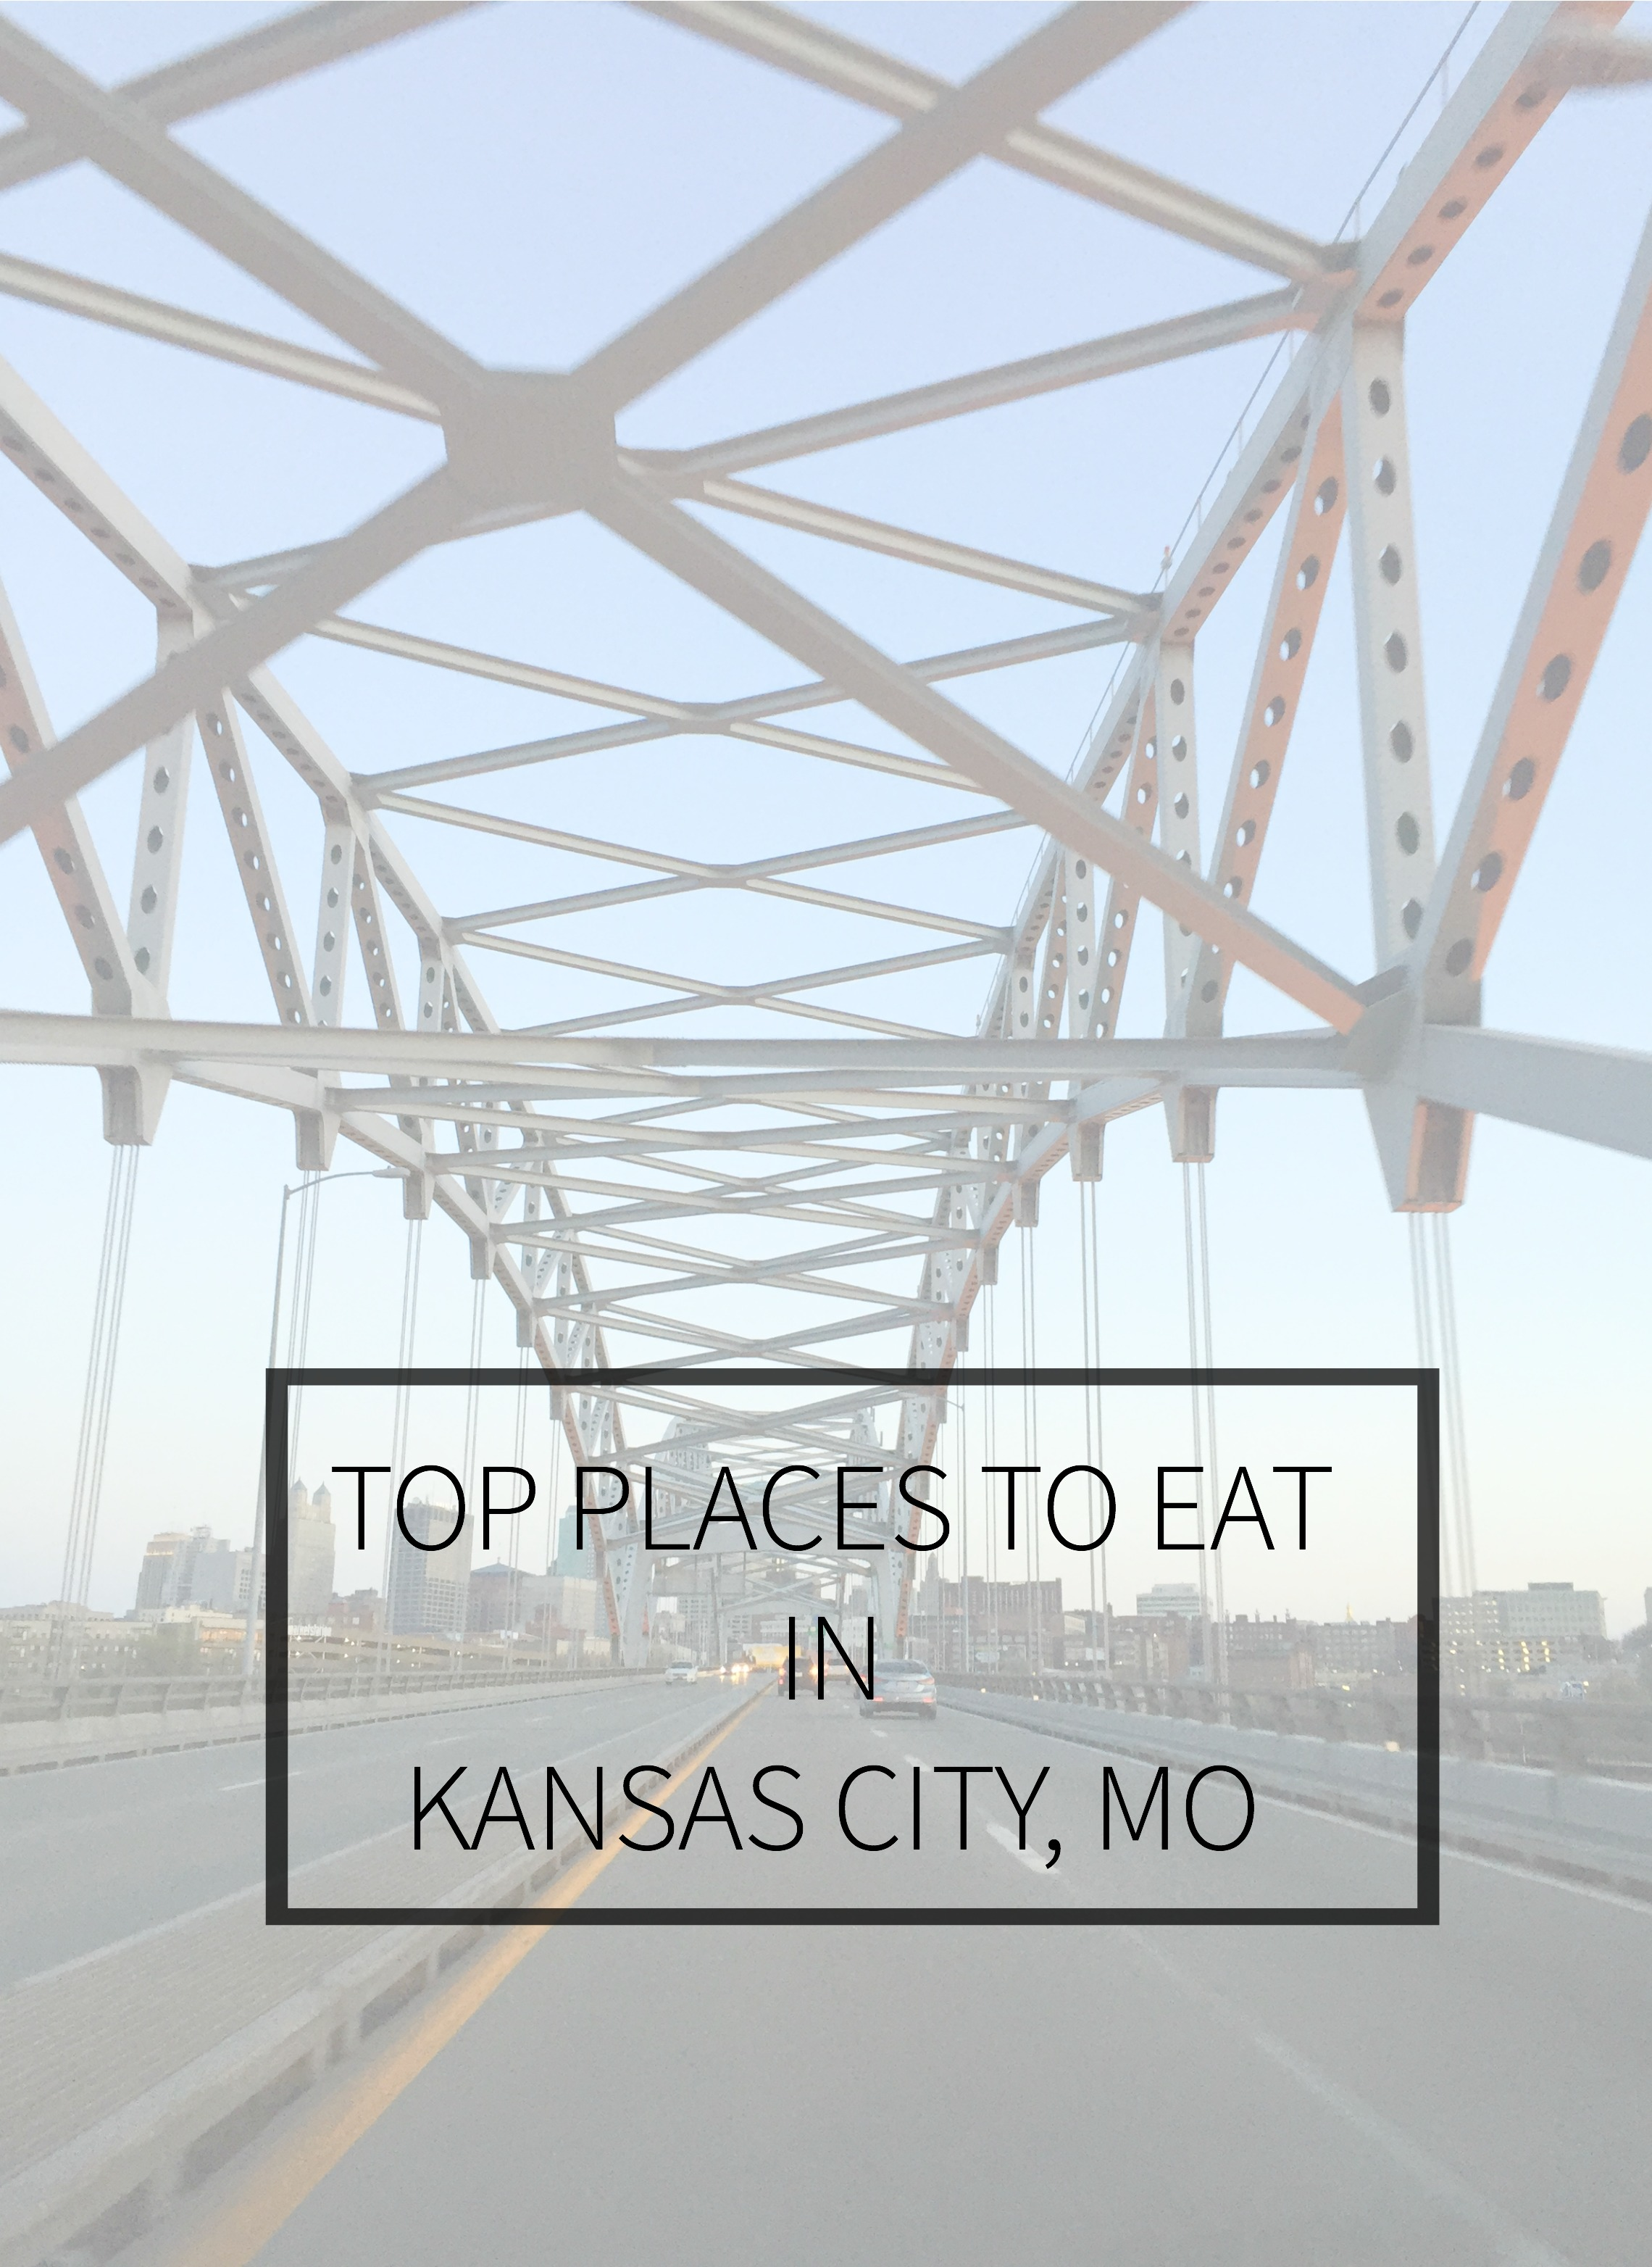 Top places to eat in Kansas City